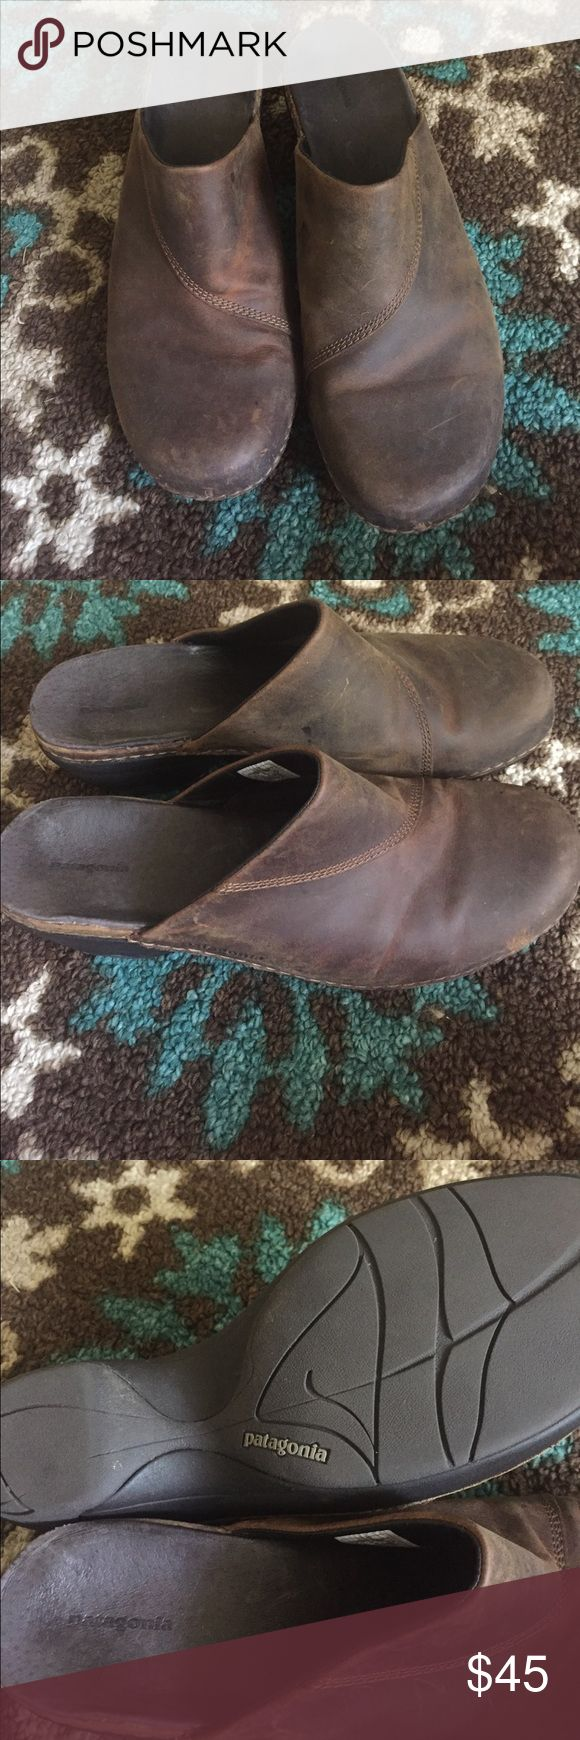 Patagonia clog Patagonia leather clogs size 8.5 excellent condition. Normal wear on the soft leather some scuffs on the clog. Can easily be buffed out. These are super comfortable and cute. Approx 2 inch heel Patagonia Shoes Mules & Clogs